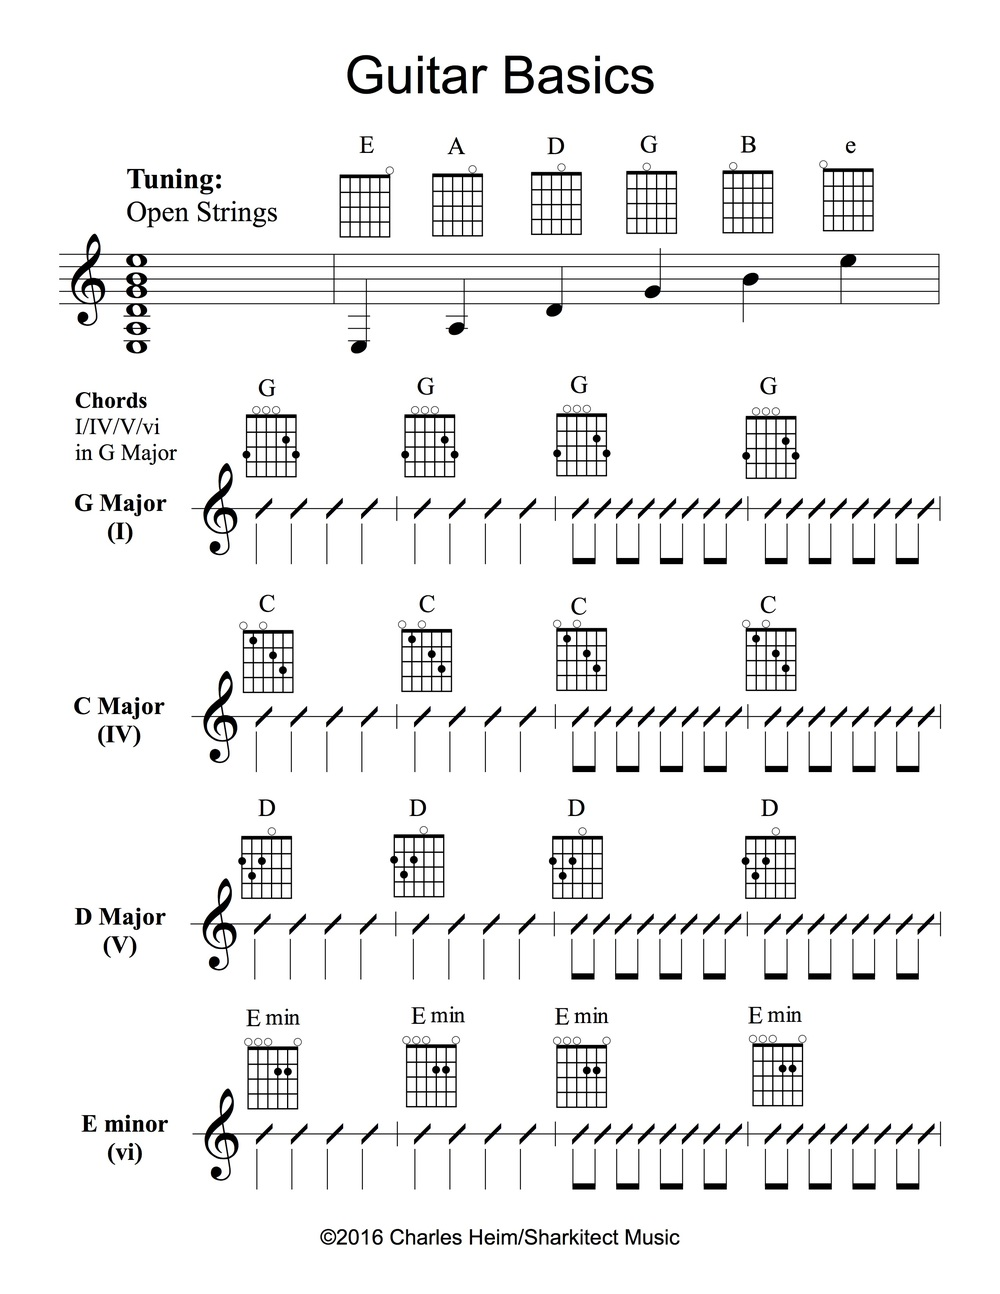 Guitar Basics for Lefty.jpg